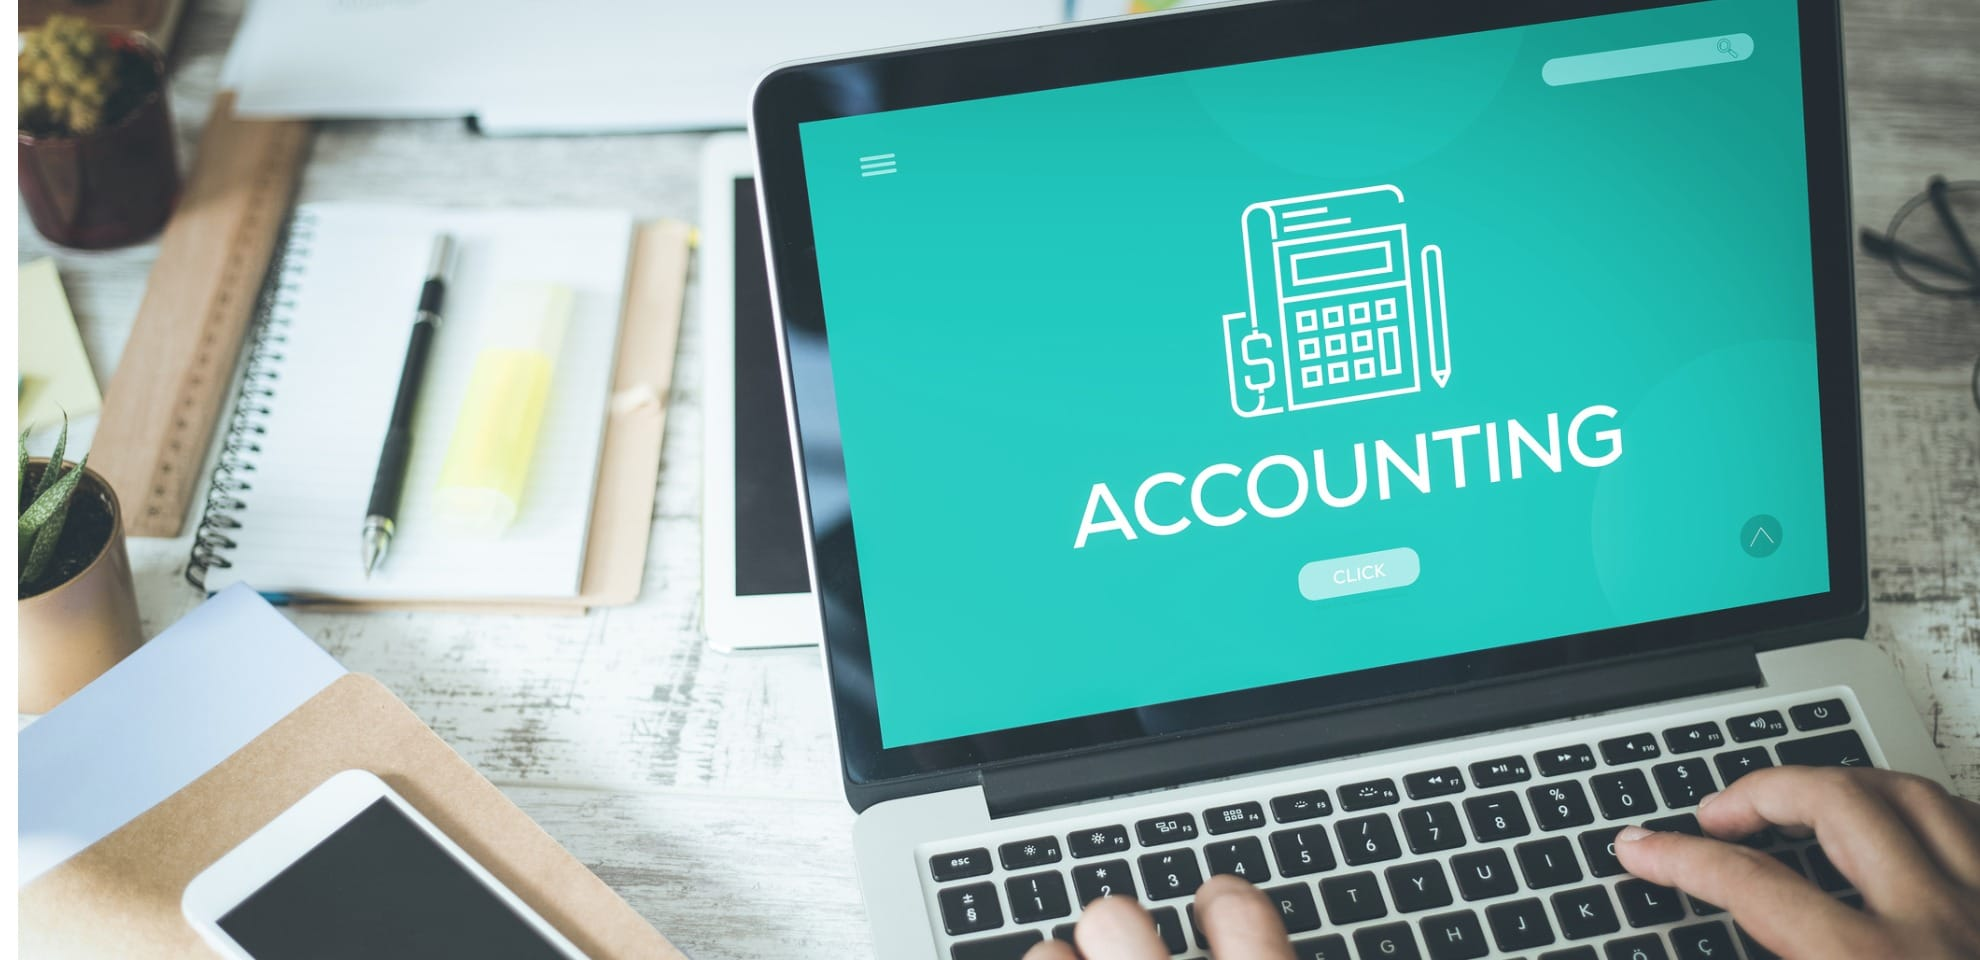 42 Basic Accounting Terms All Business Owners Should Know